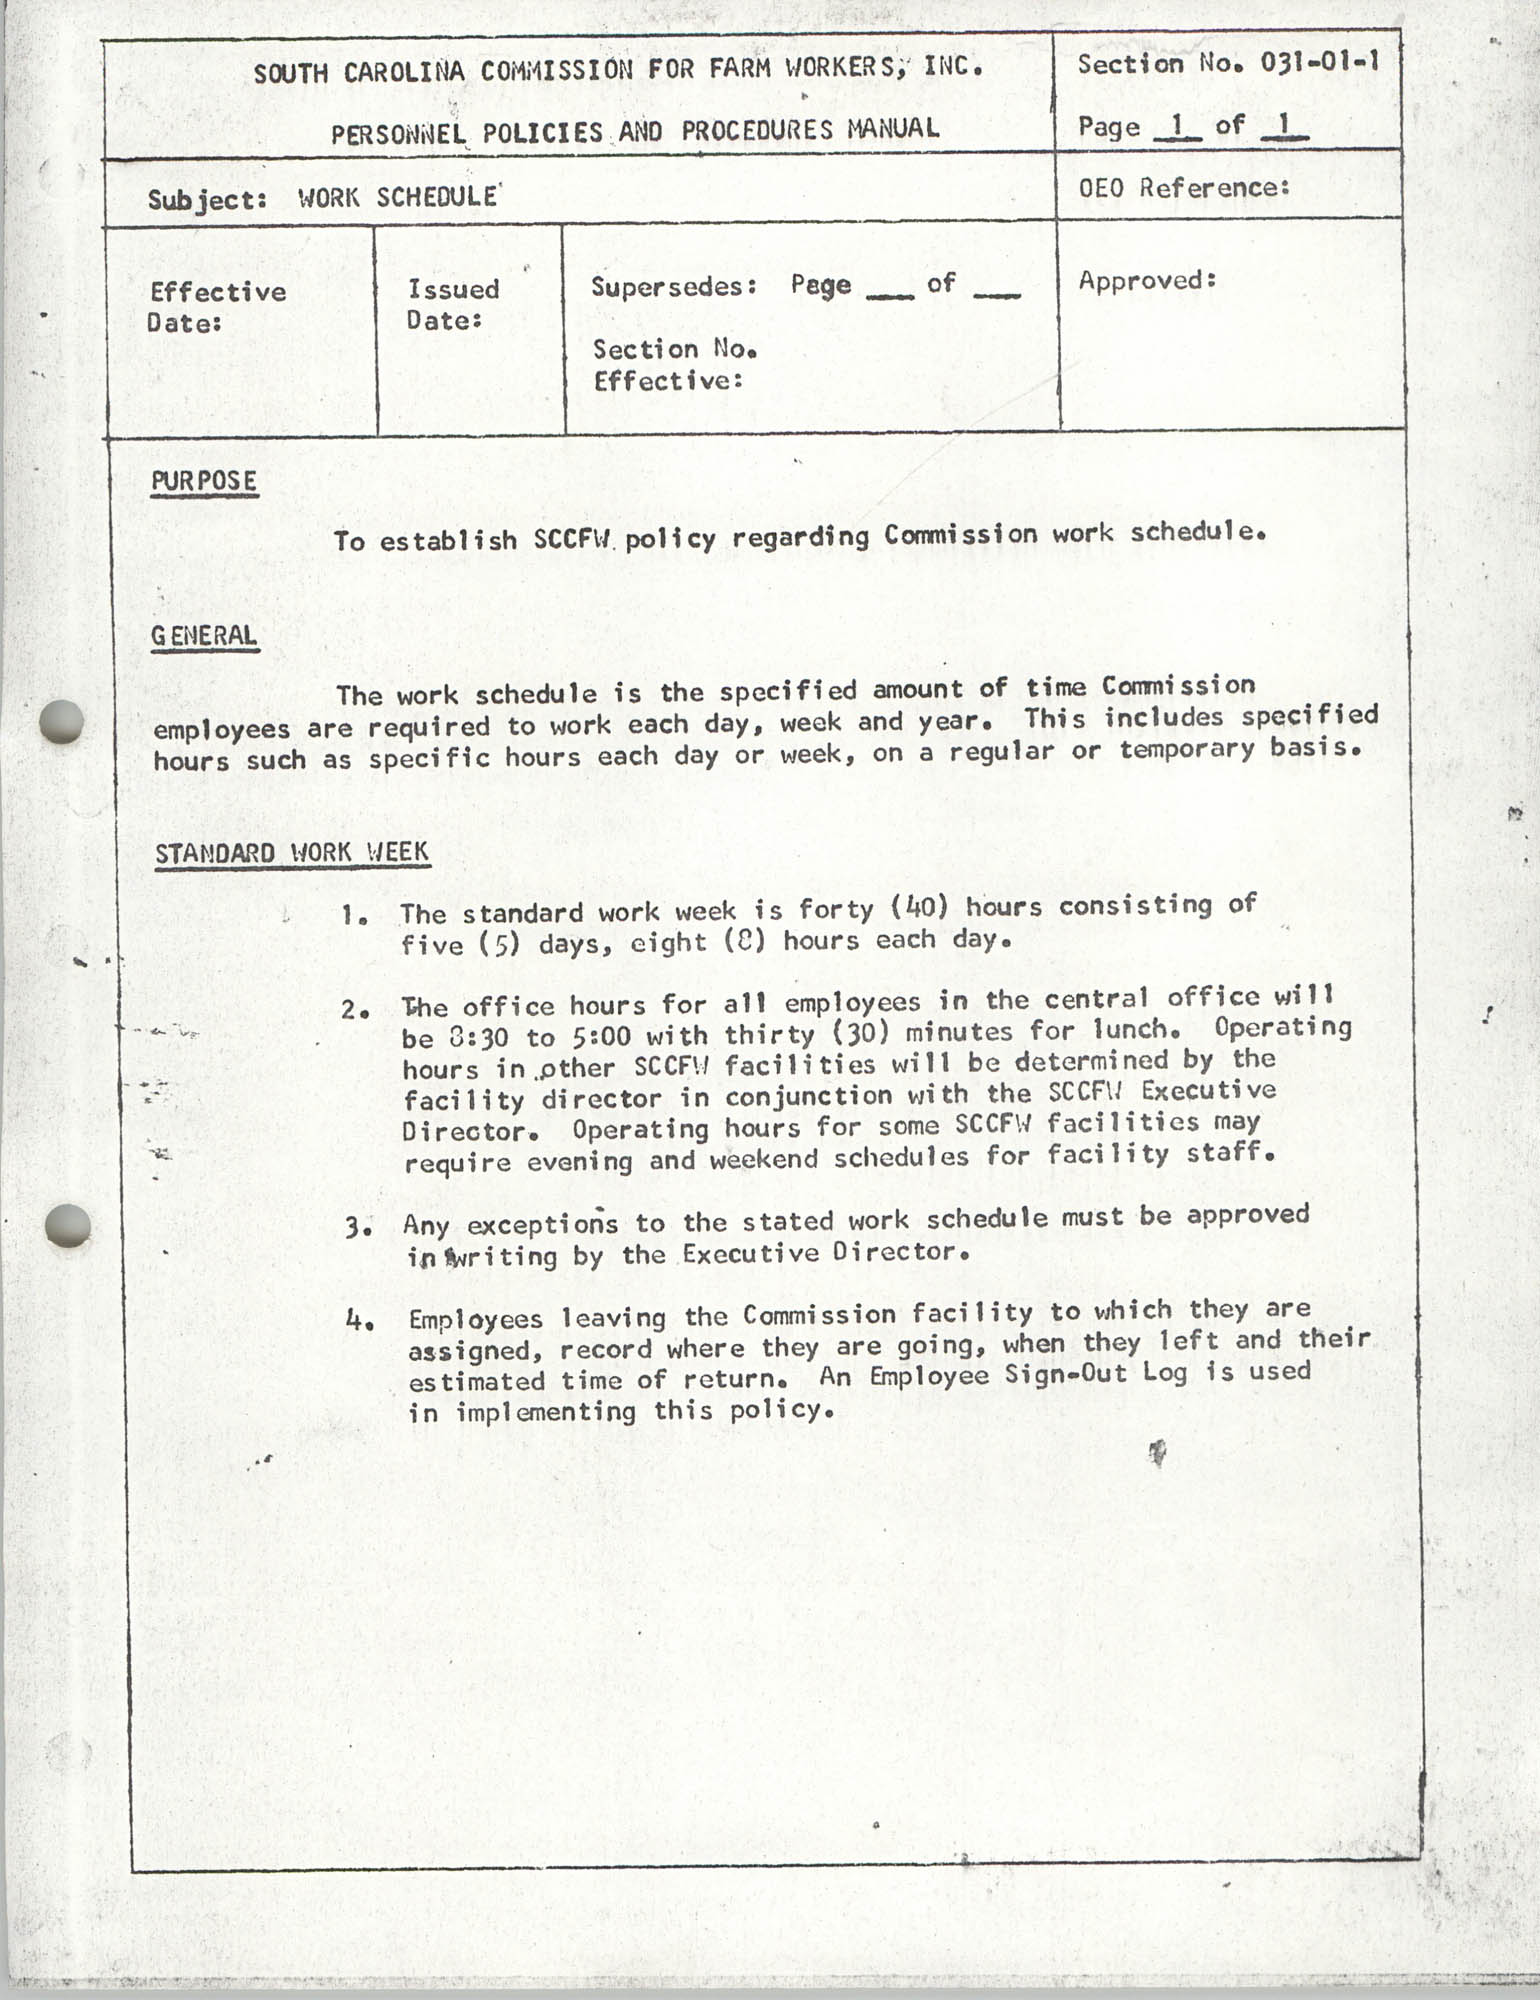 Personnel Policies and Procedures Manual, Section No. 031-01-1